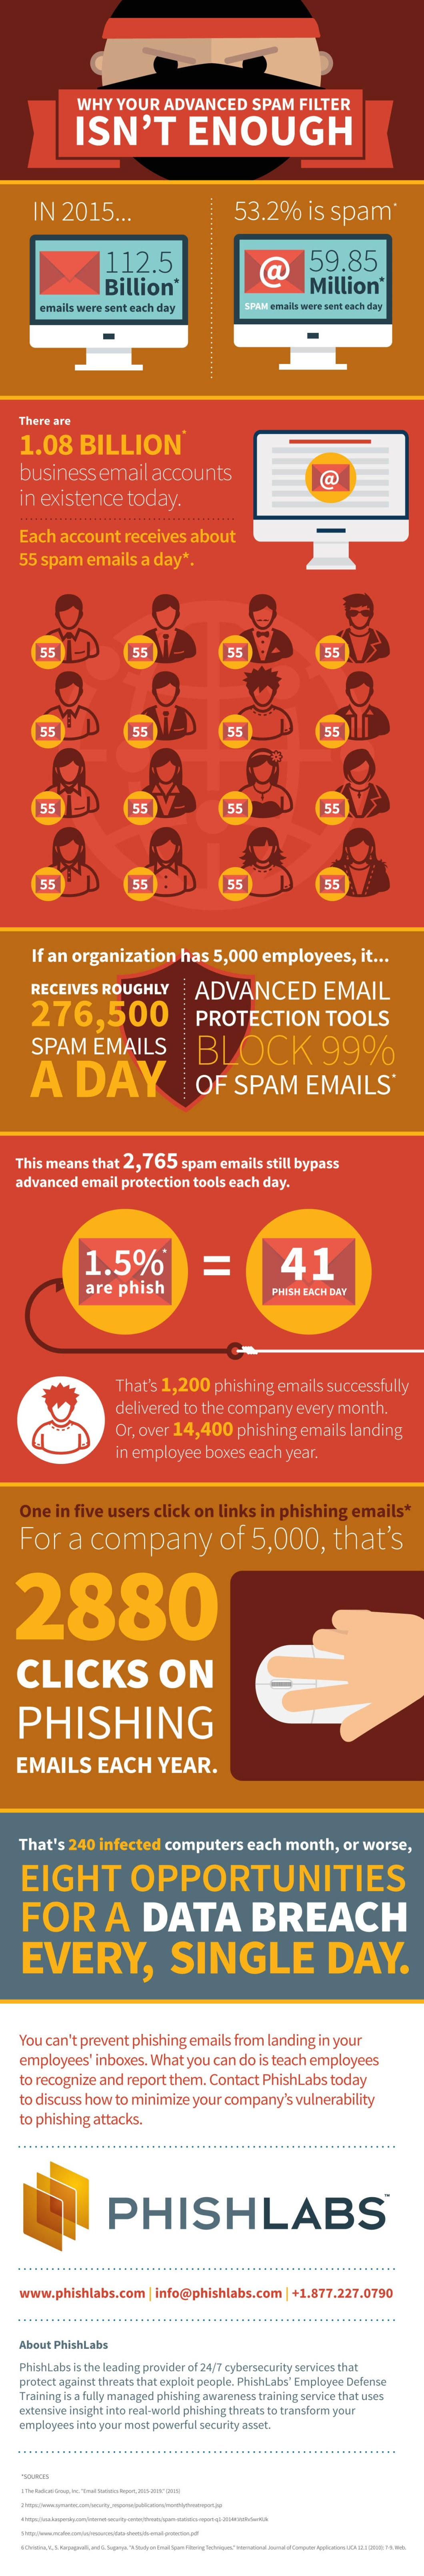 The Gigantic Spam Warzone: Why Advanced Spam Filters Aren't Enough - Infographic